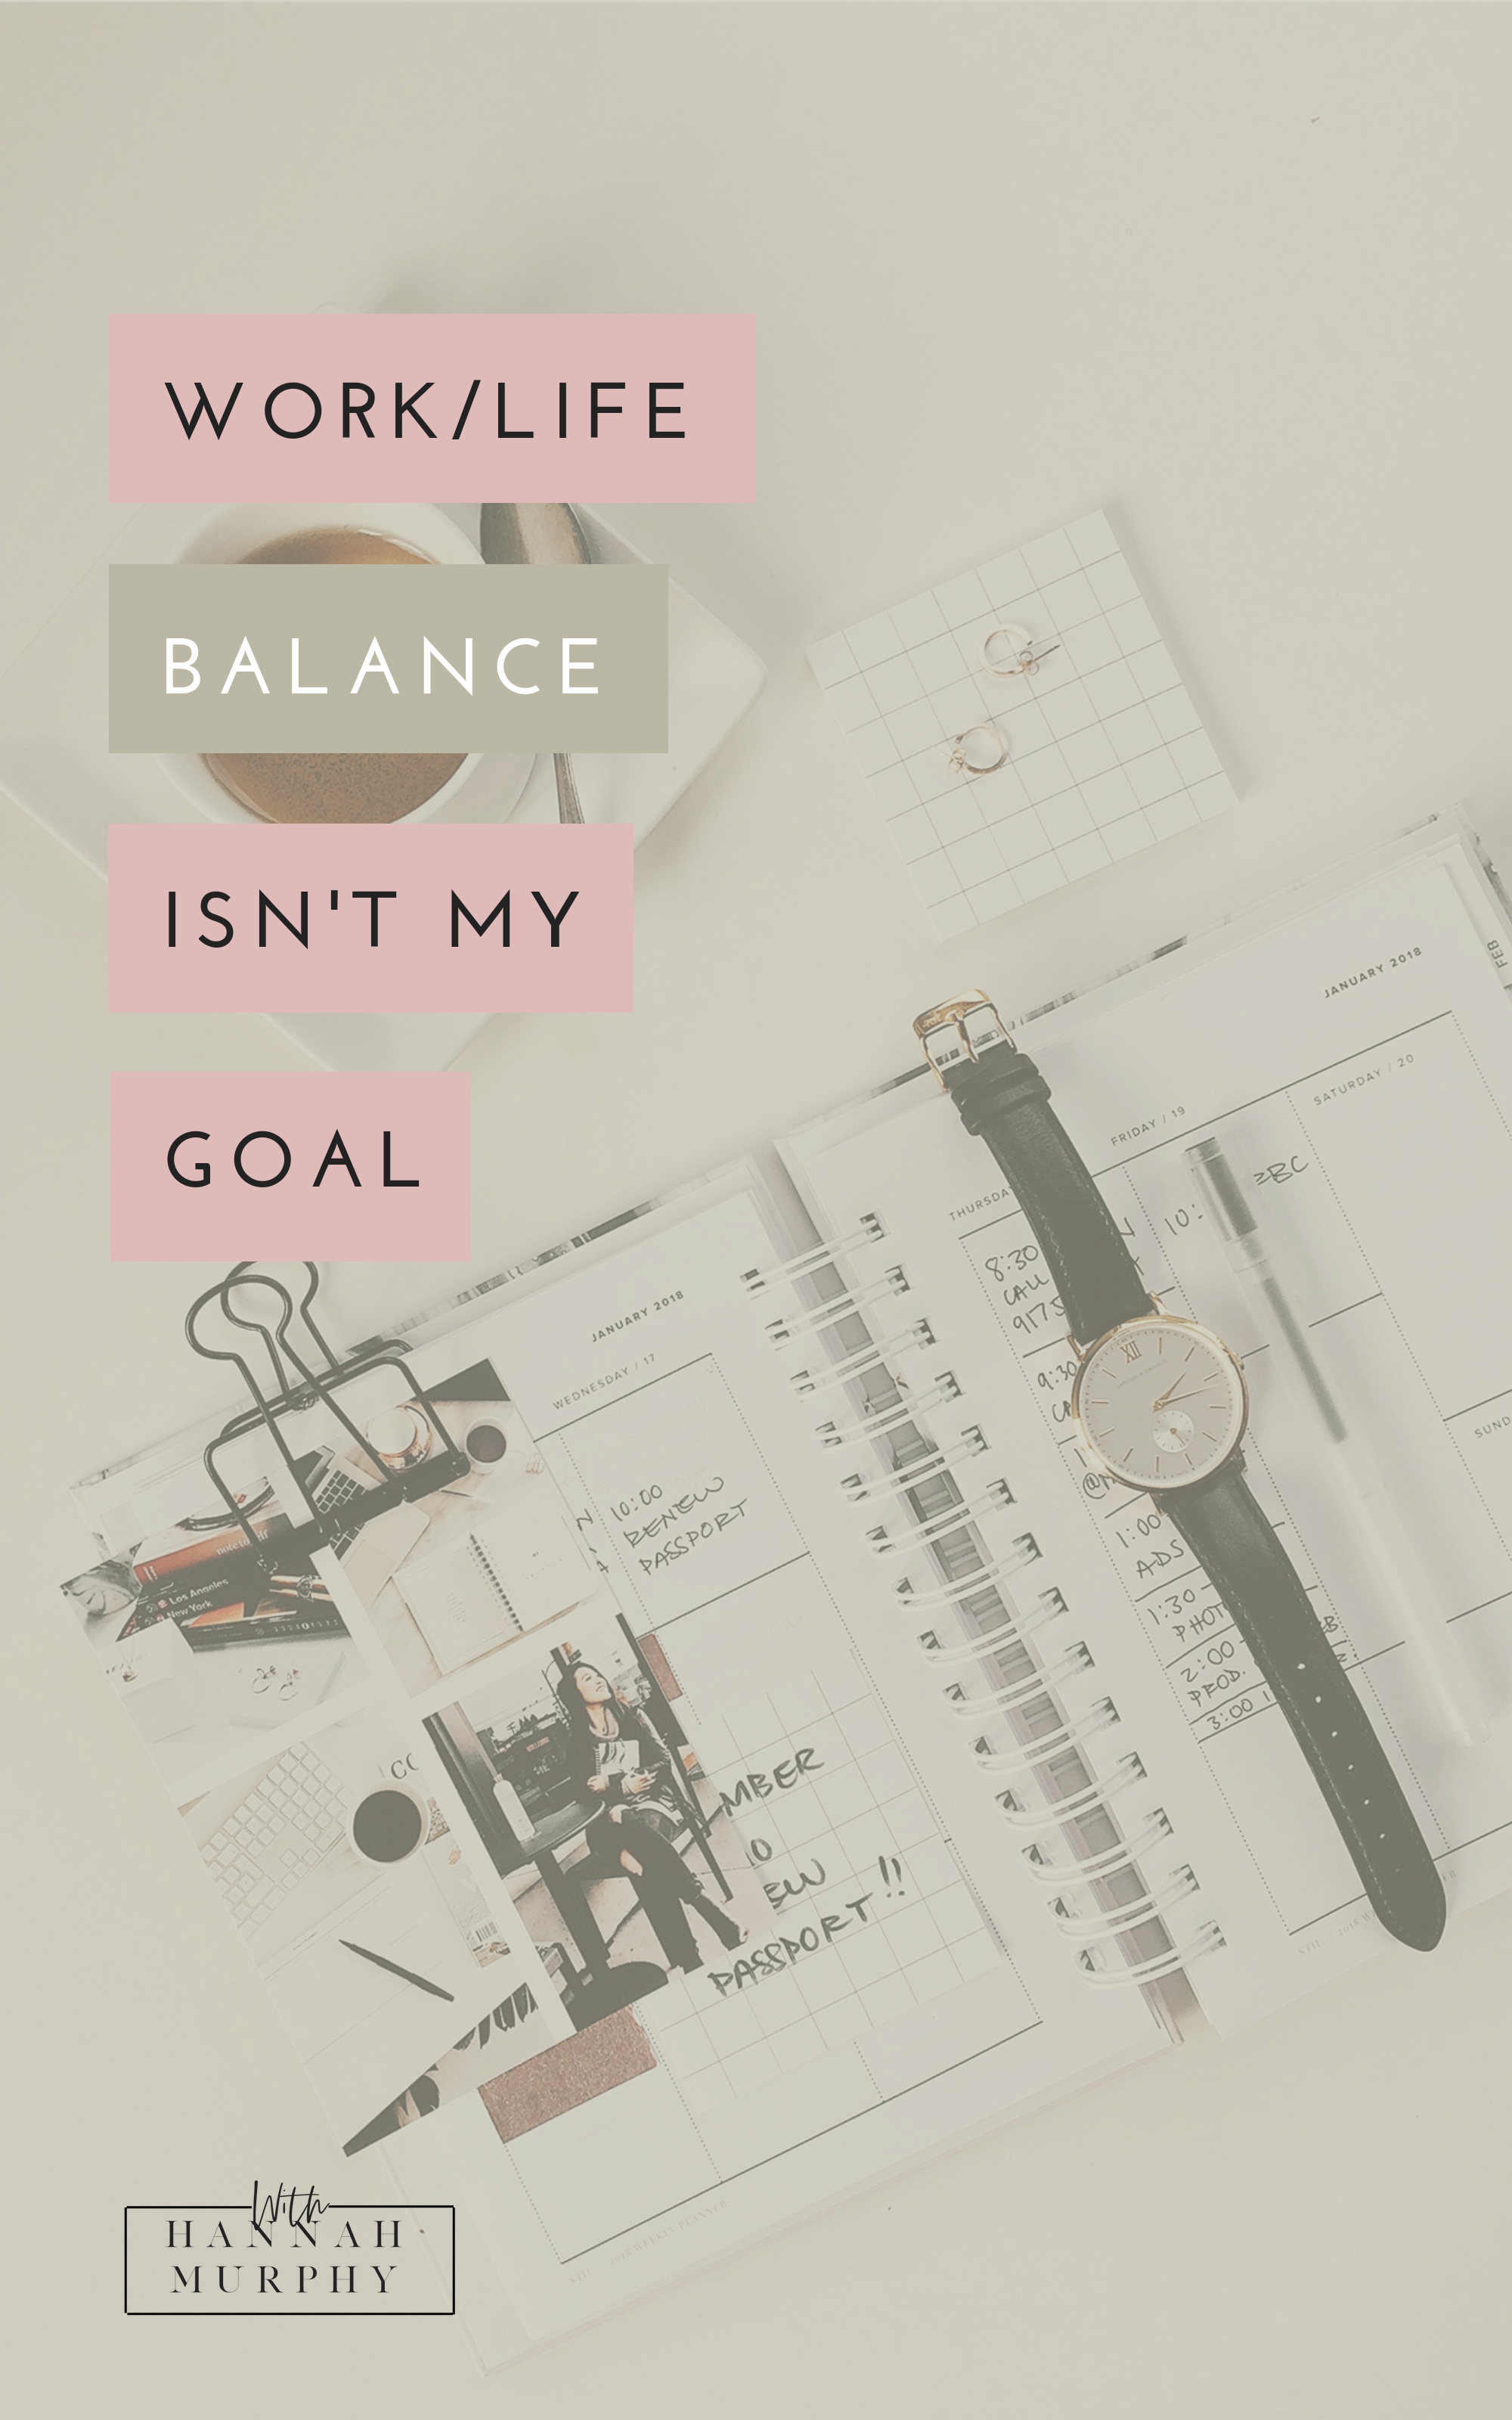 The industry is saturated with productivity tips to achieve work life balance, however it isn't always the goal. We need to learn how to manage our time and creating a meaningful work schedule so that we can enjoy life and work together.